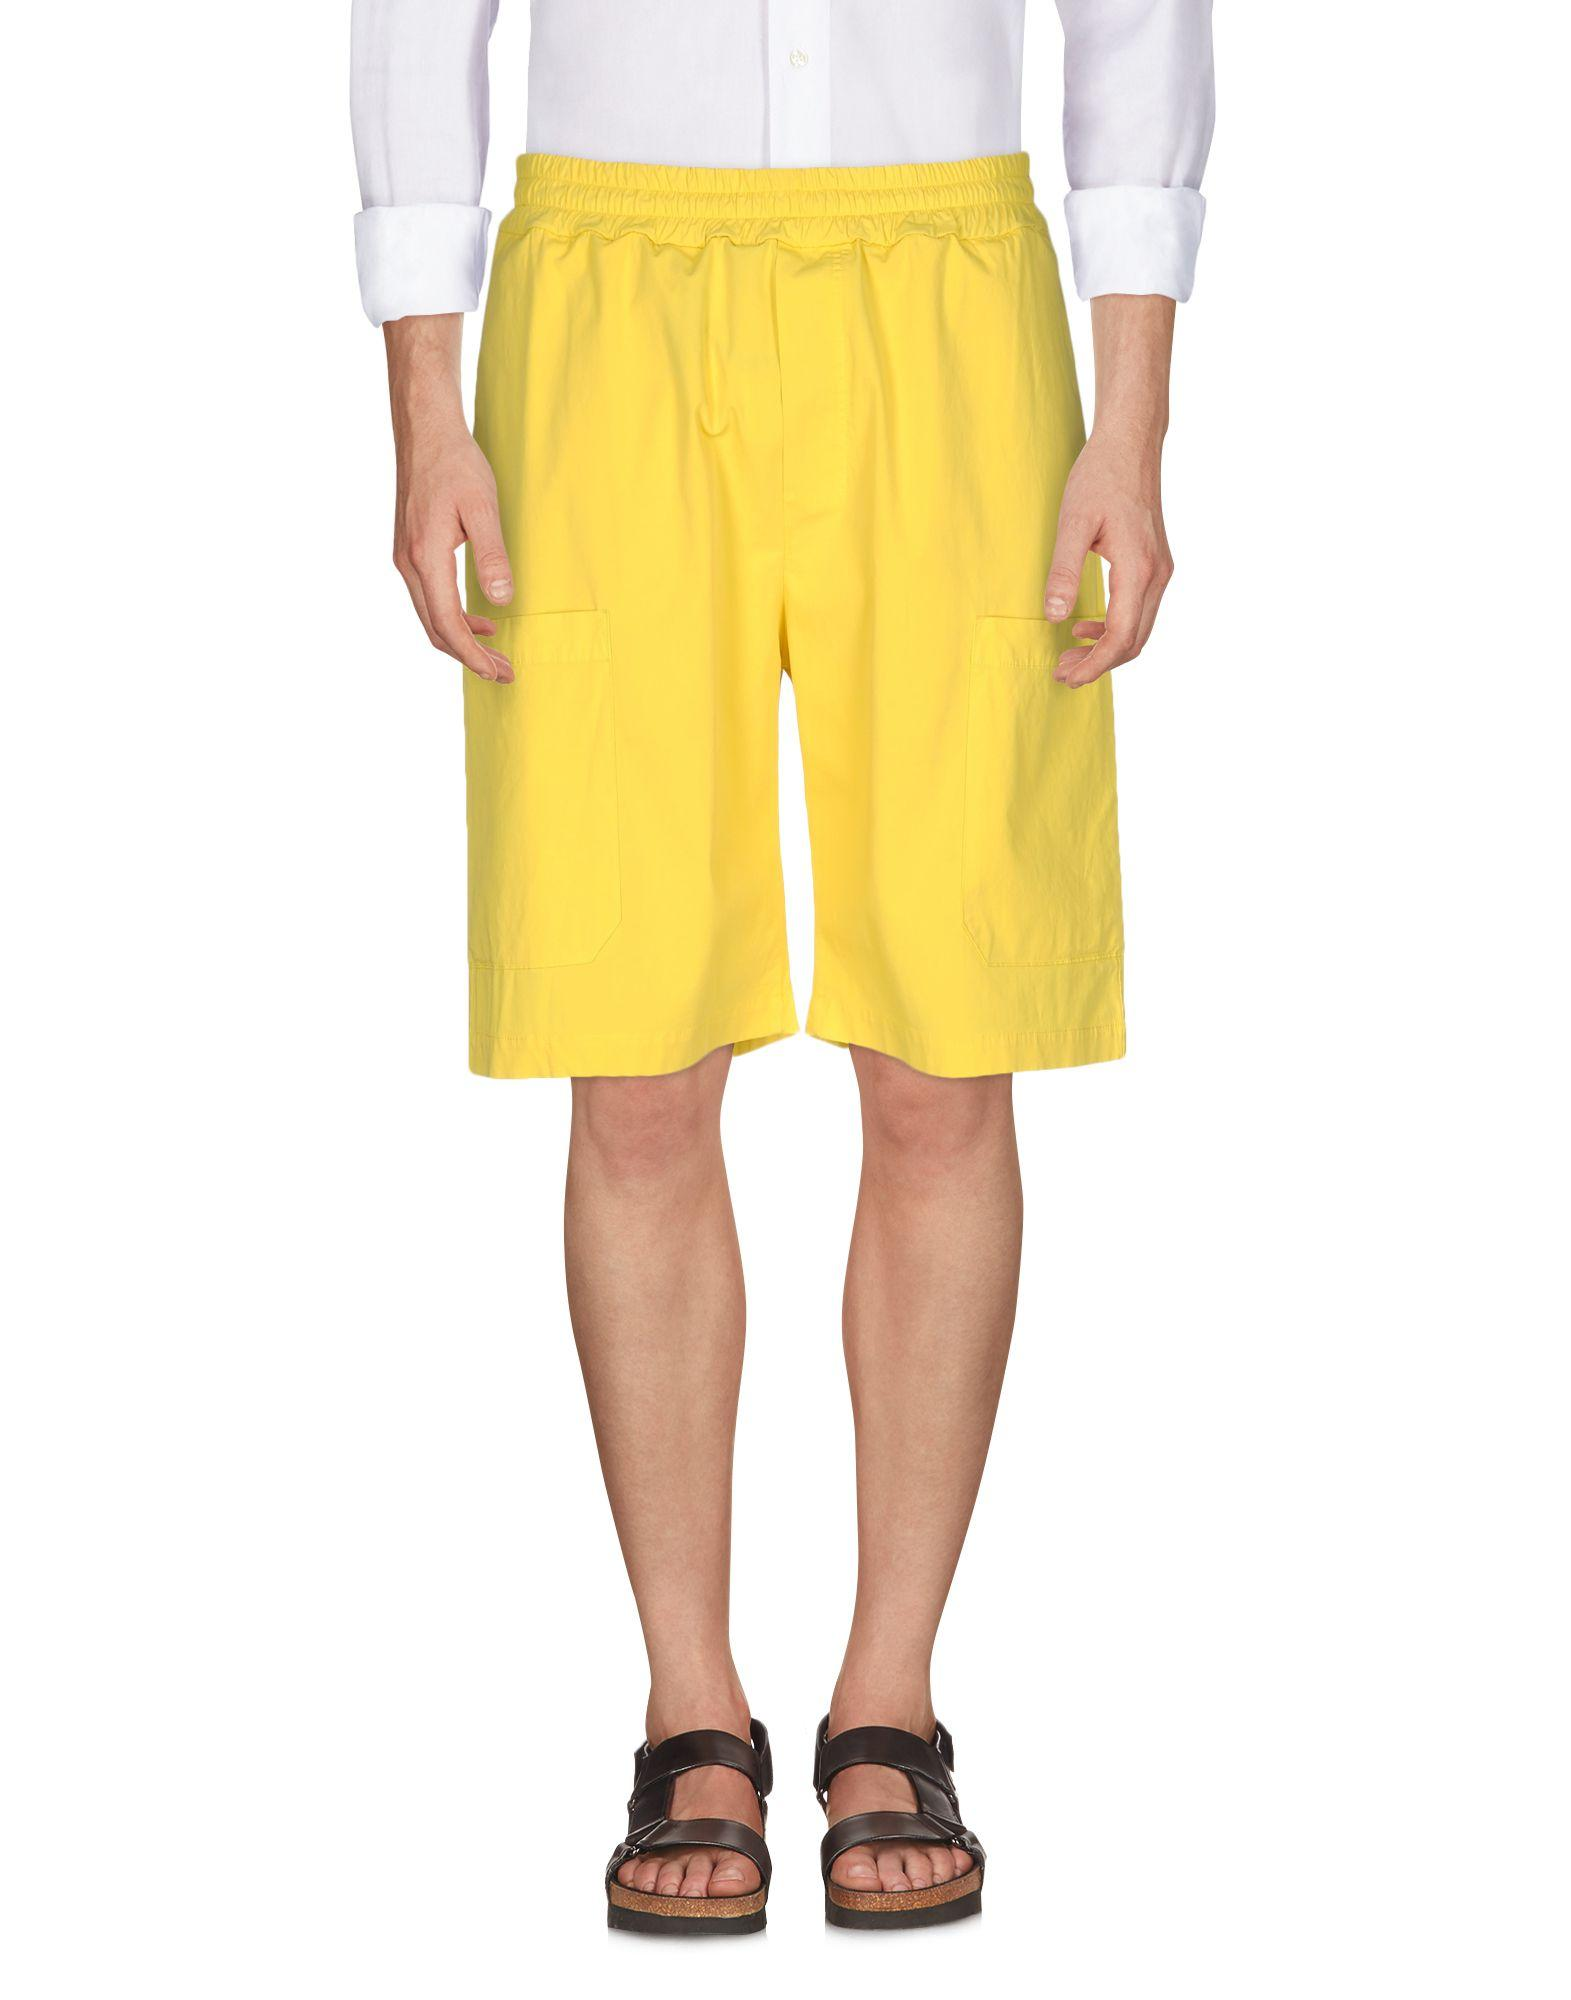 Low Brand Shorts & Bermuda In Yellow